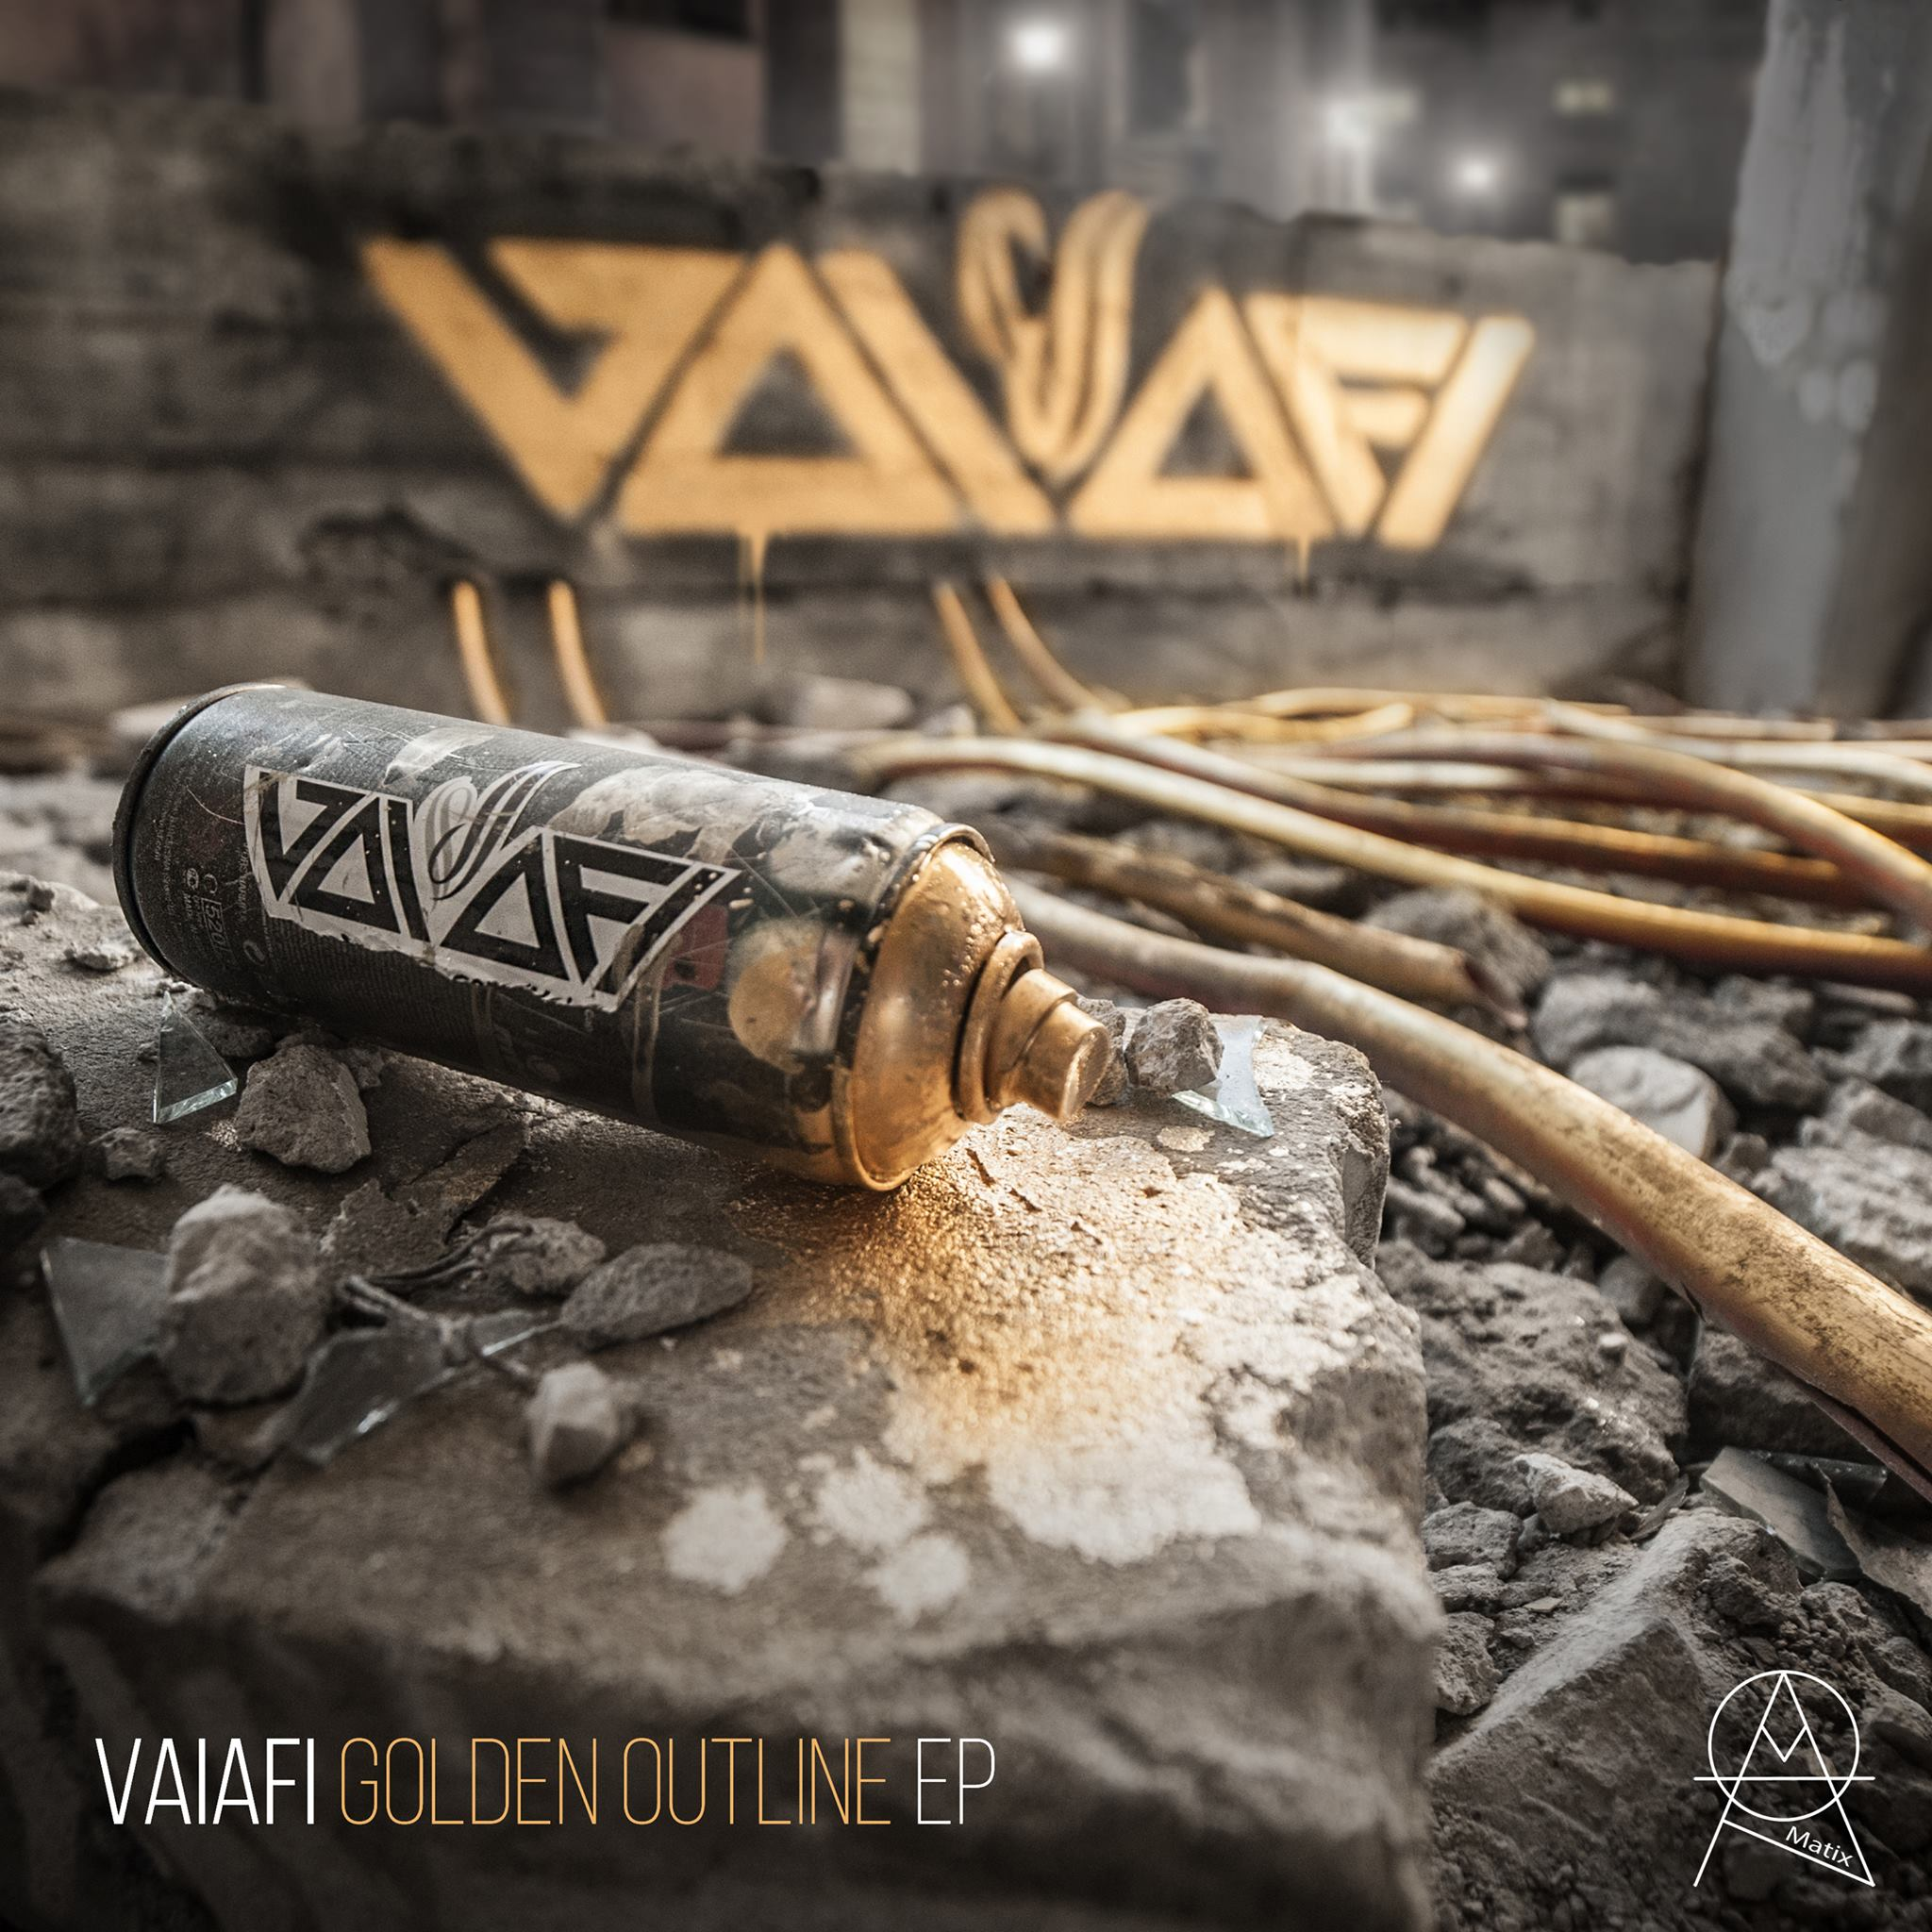 Vaiafi - The Golden Outline EP